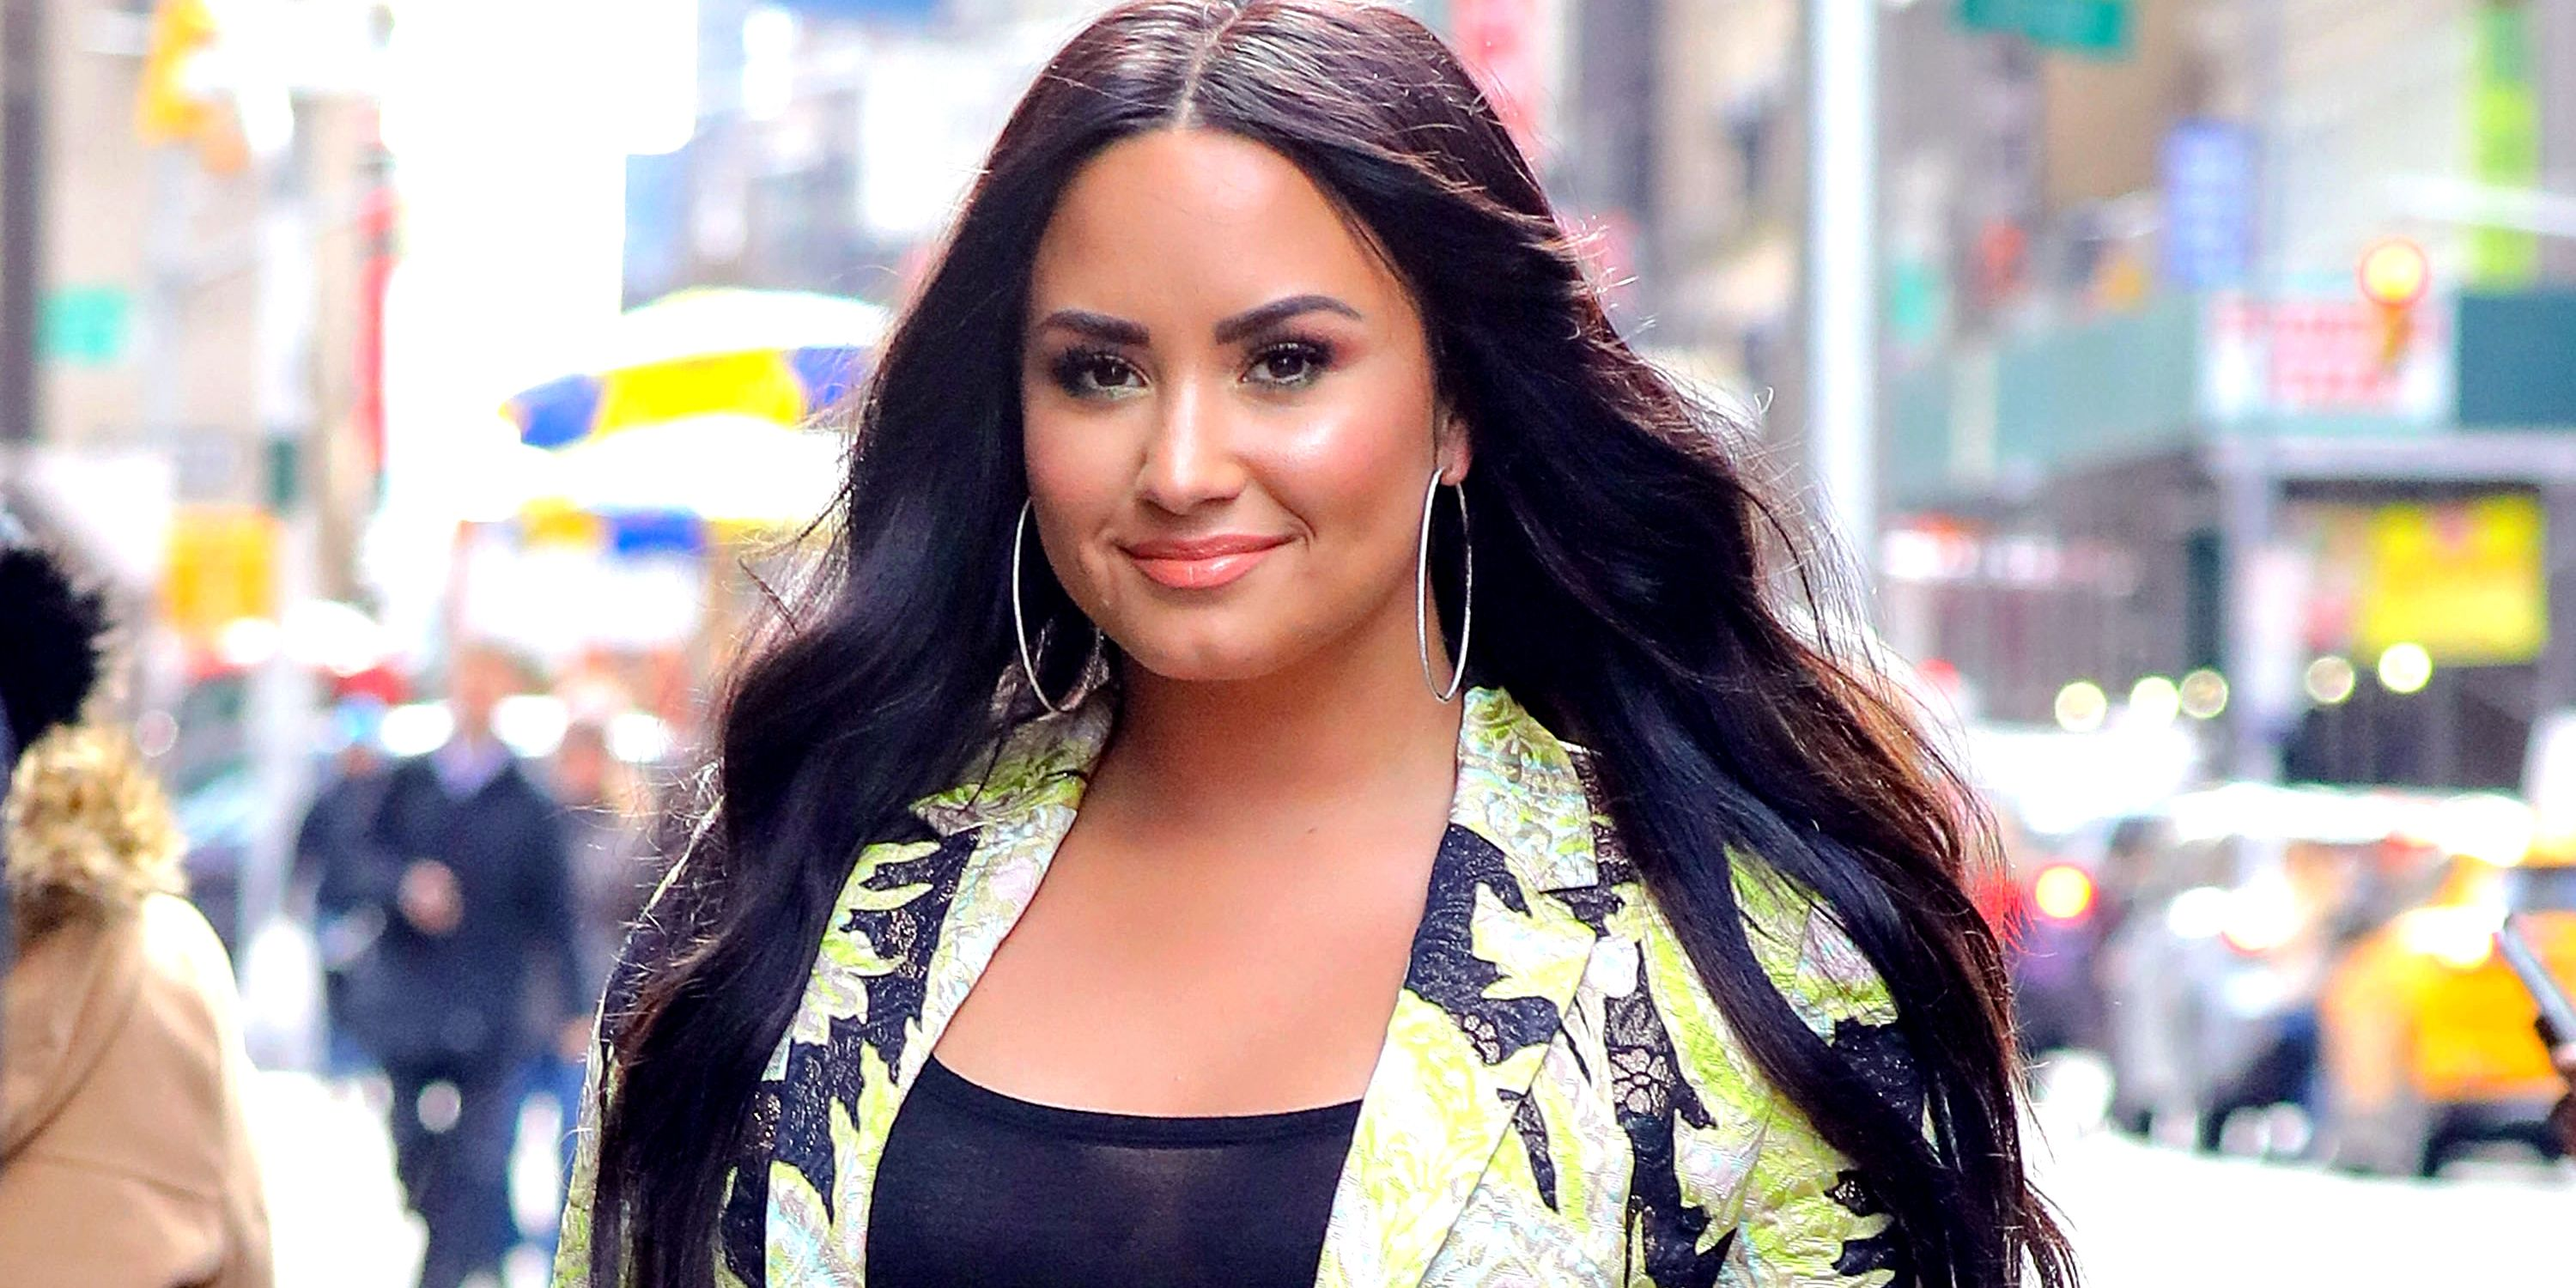 Demi Lovato Just Dyed Her Hair Blonde For Summer 2018